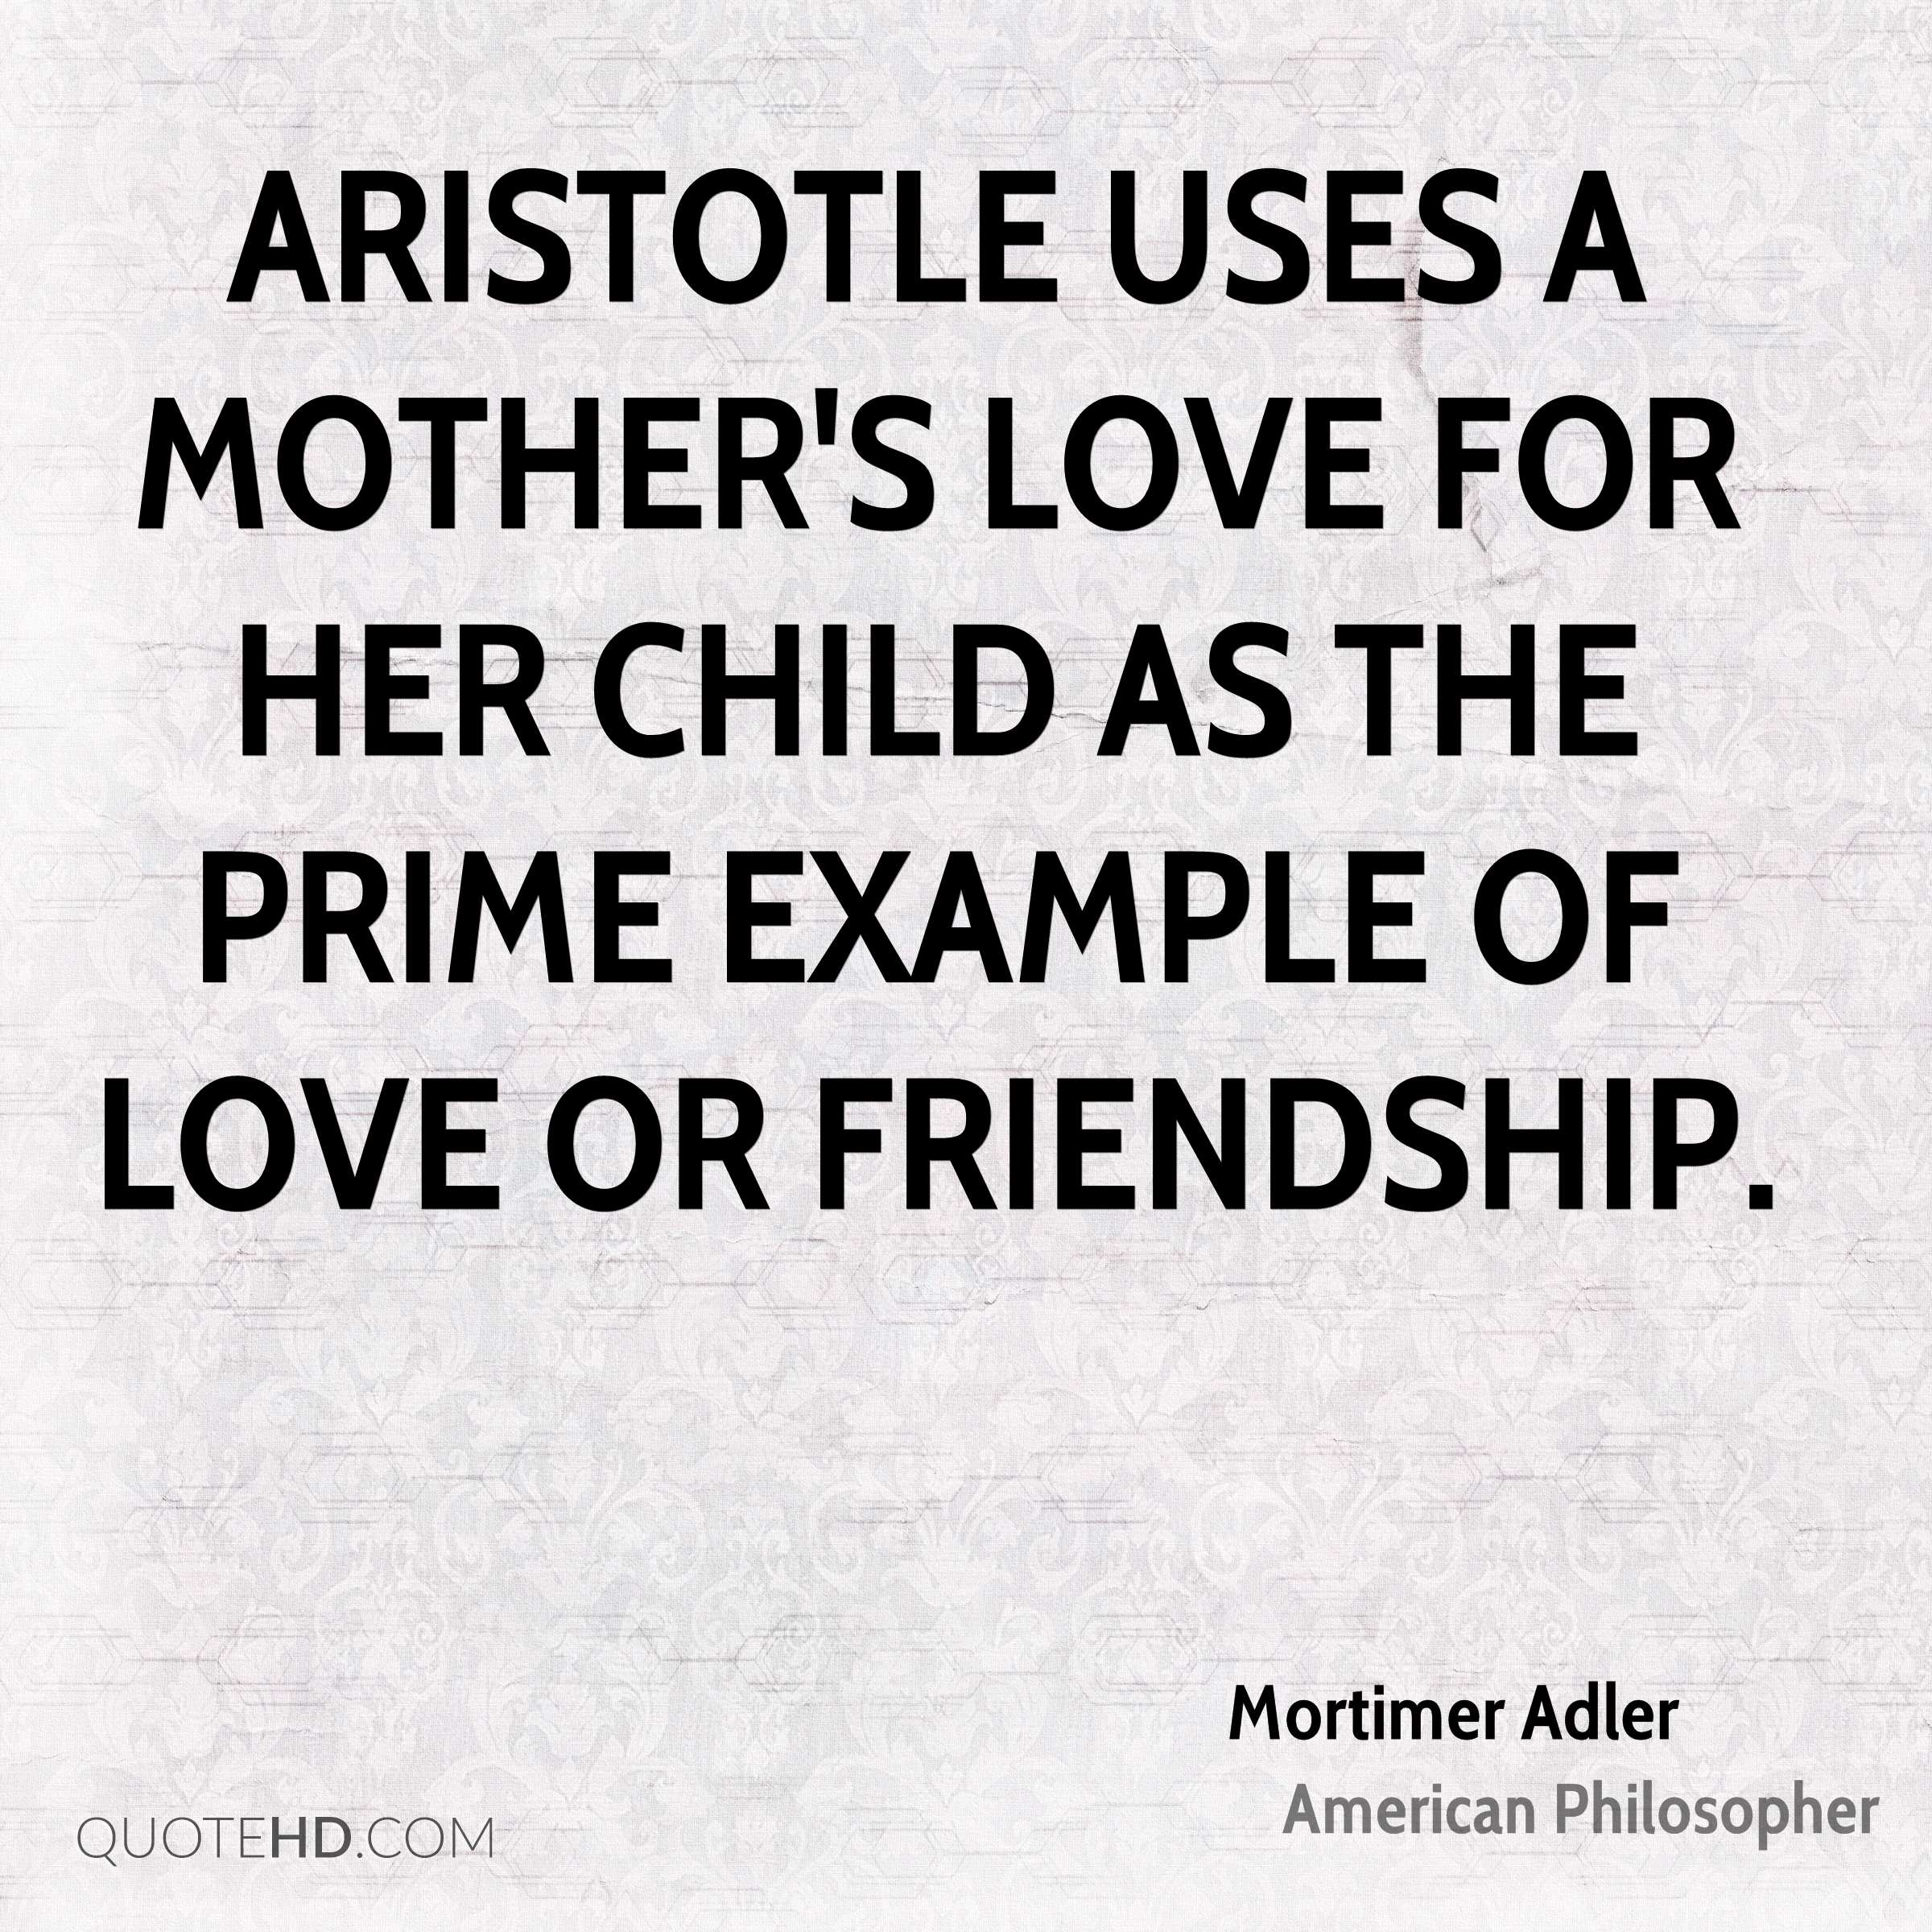 A Mothers Love Quotes Mortimer Adler Friendship Quotes  Quotehd